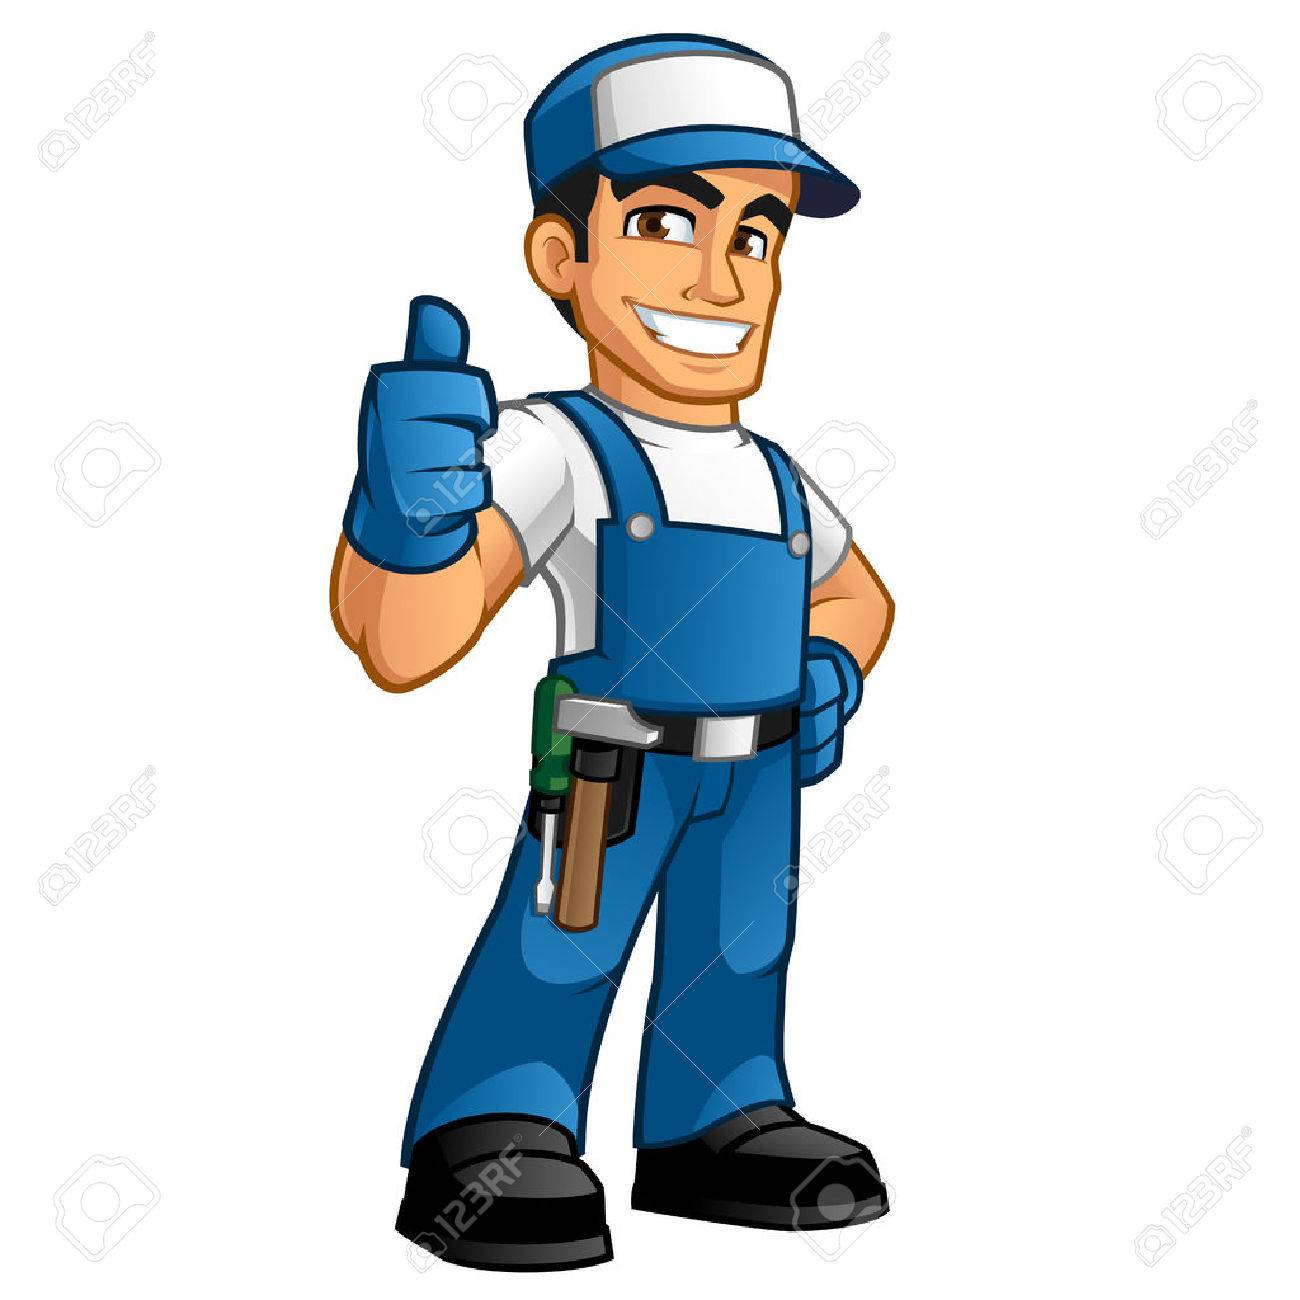 handyman wearing work clothes and a belt with tools - 63151189